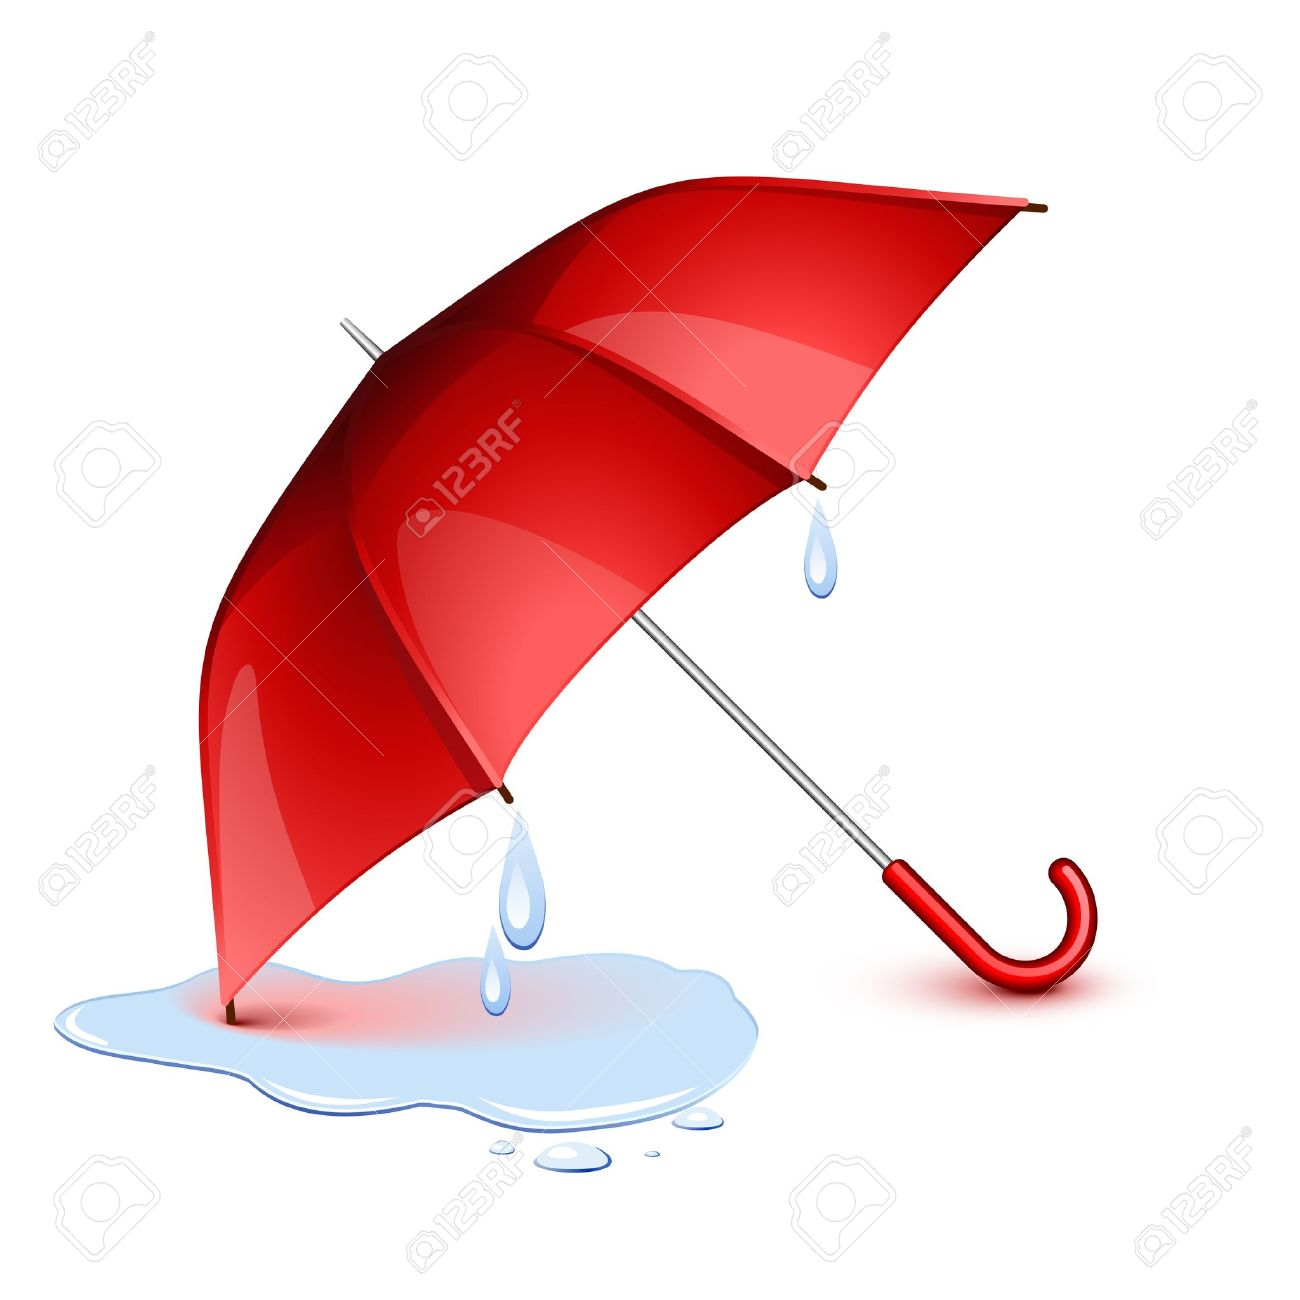 Wet Red Umbrella After The Rain Royalty Free Cliparts, Vectors.